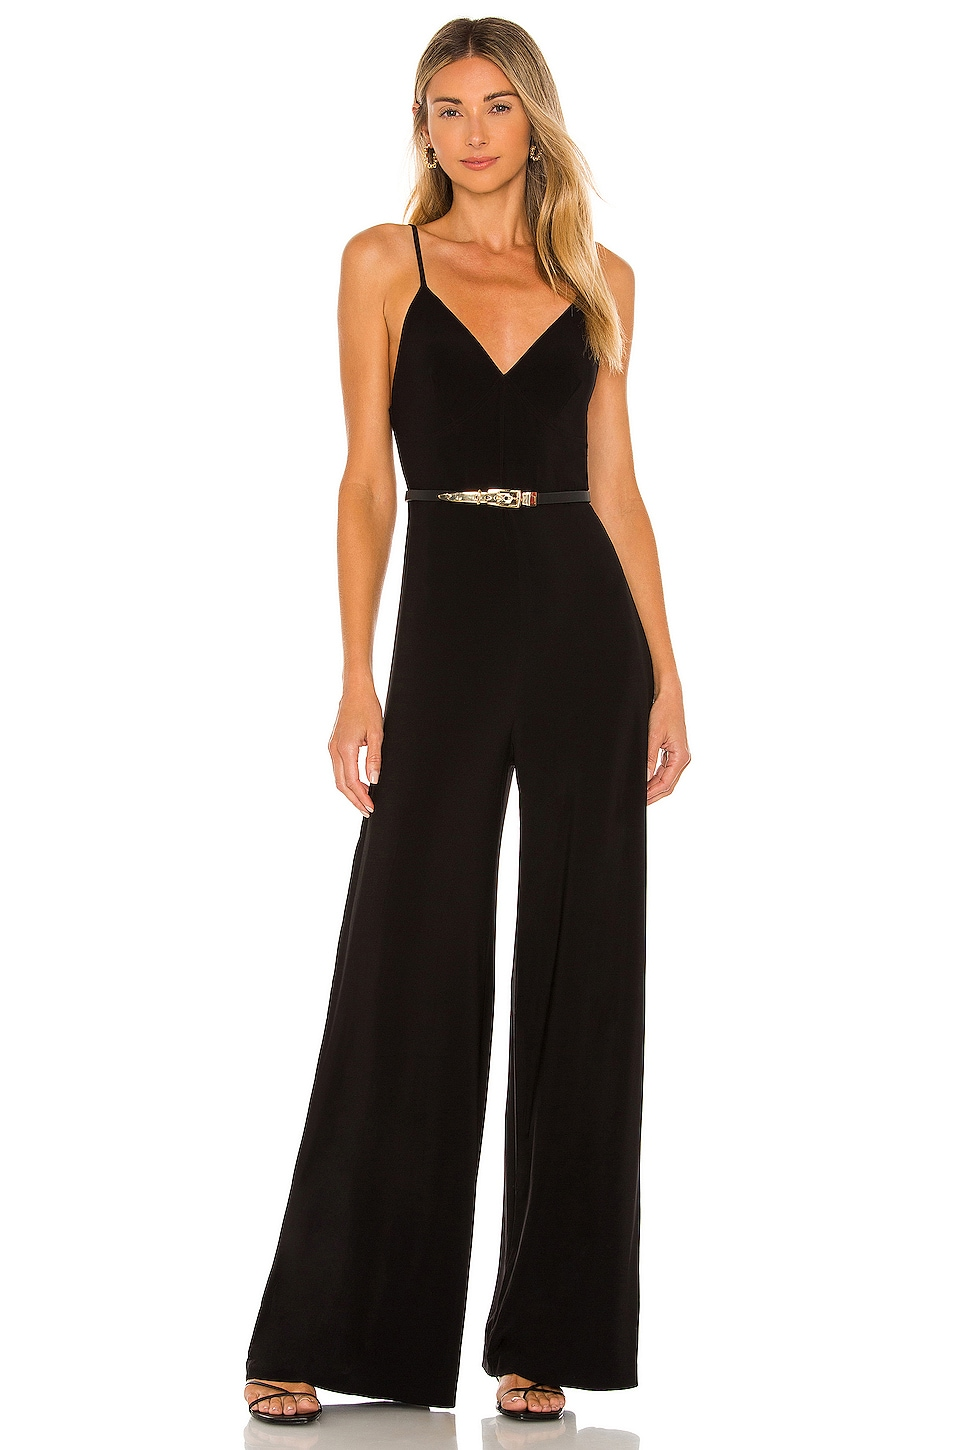 Norma Kamali Slip Jumpsuit in Black